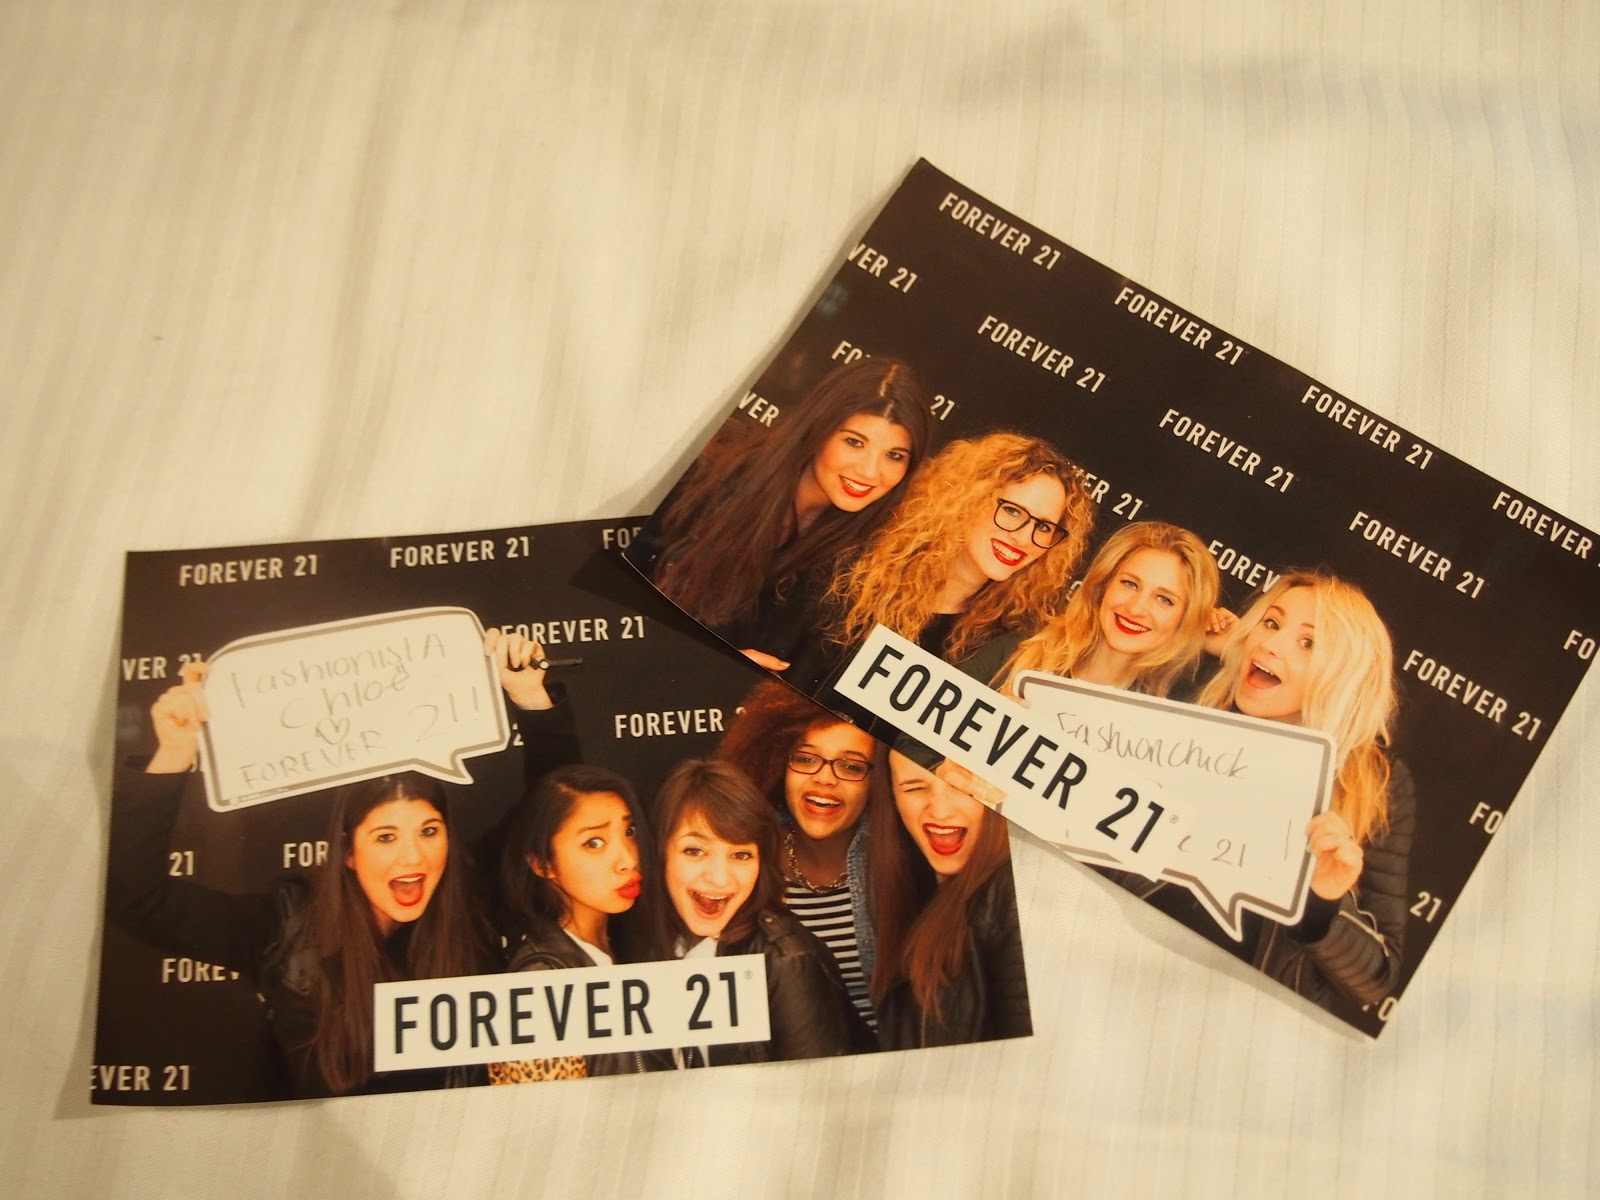 Forever21 opening Amsterdam store impression photobooth fun